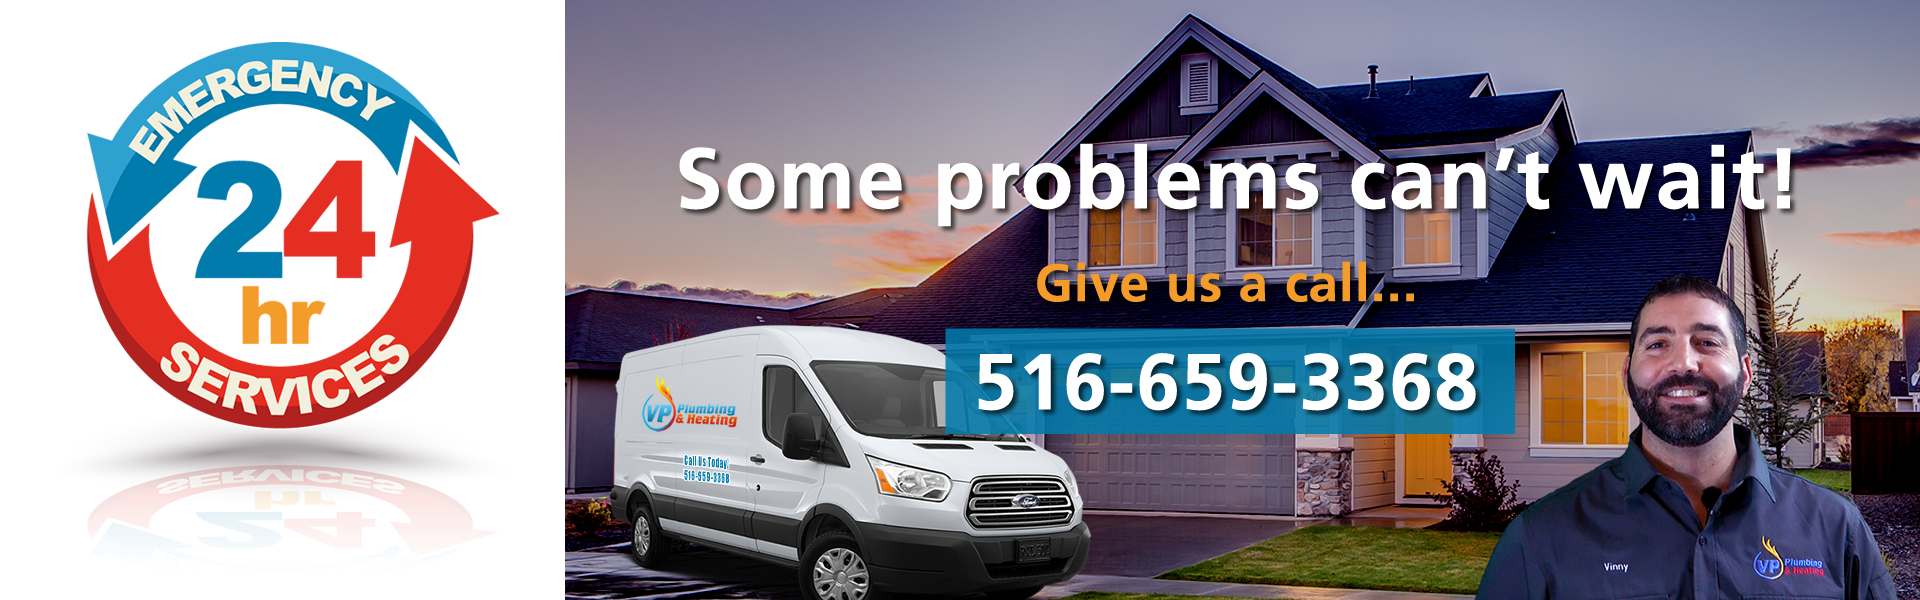 24 Hour Emergency Plumbing Service